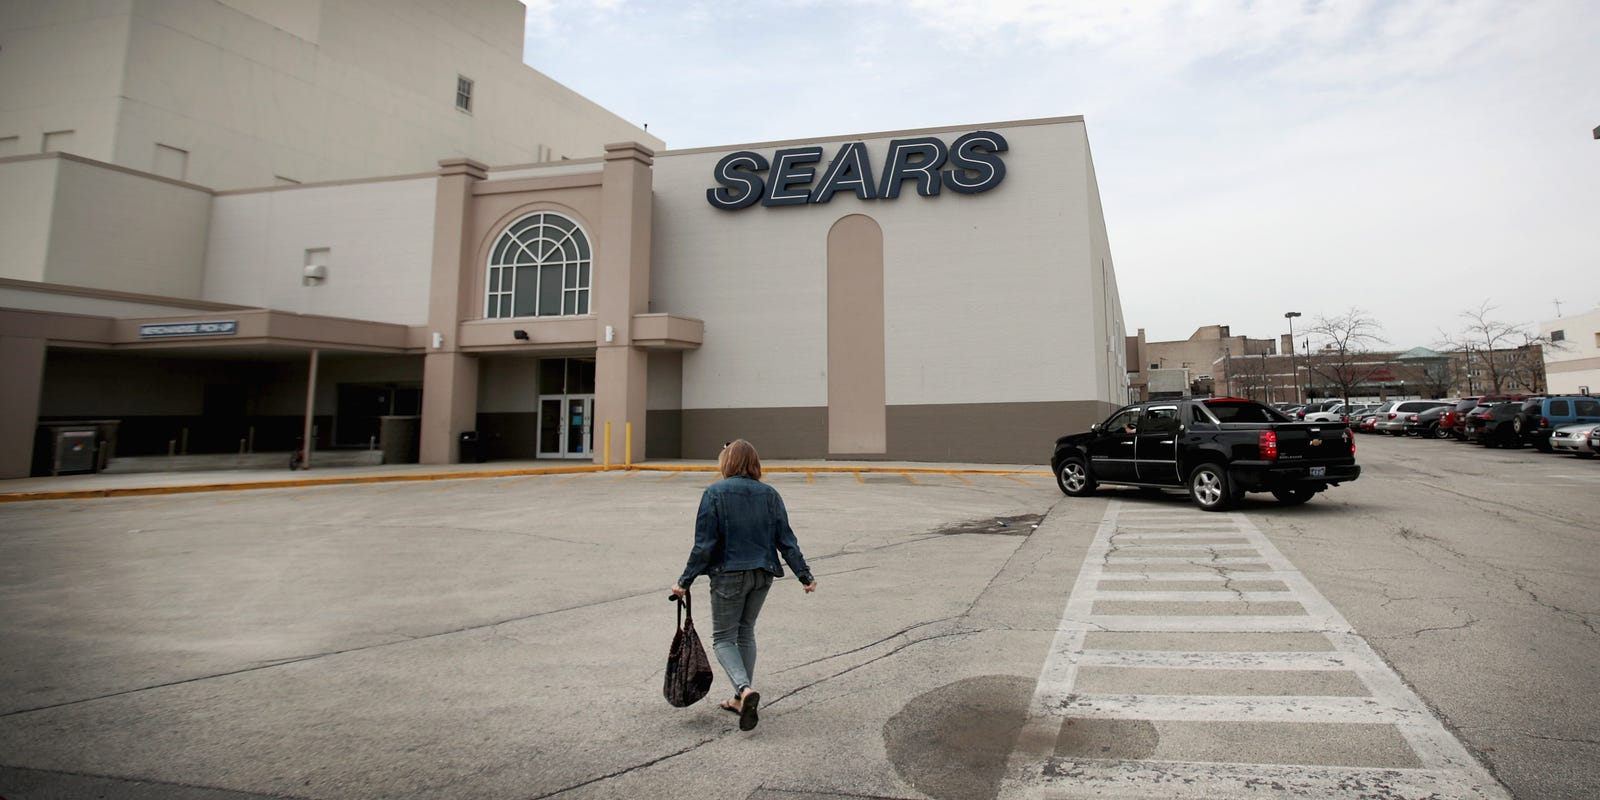 Sears Kmart To Close Stores Surface Wiring Conduit The Garage Journal Board